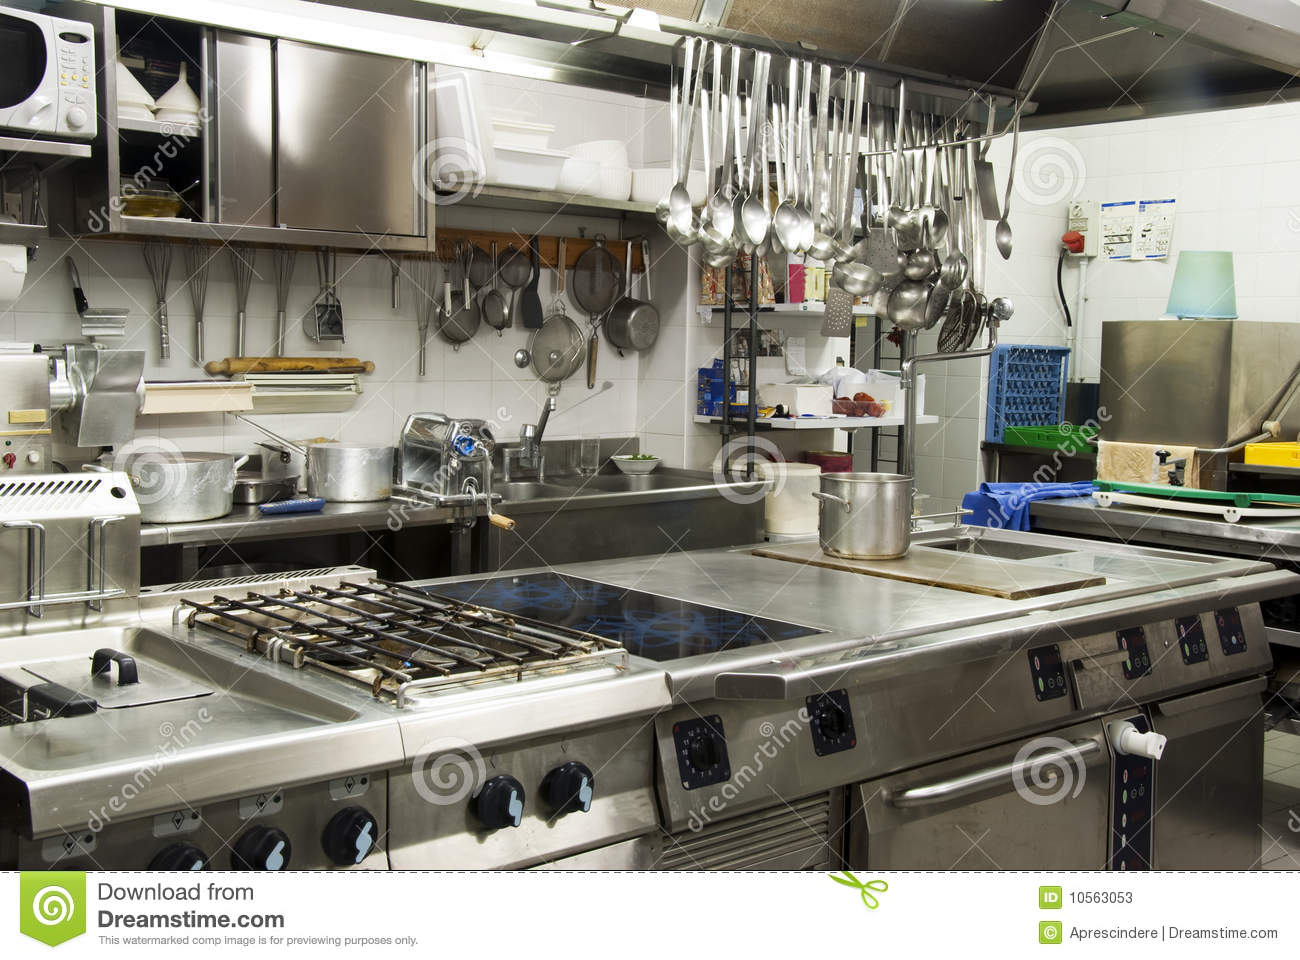 hotels with kitchen cheap rooster decor for hotel stock image of catering chrome 10563053 modern in a or restaurant